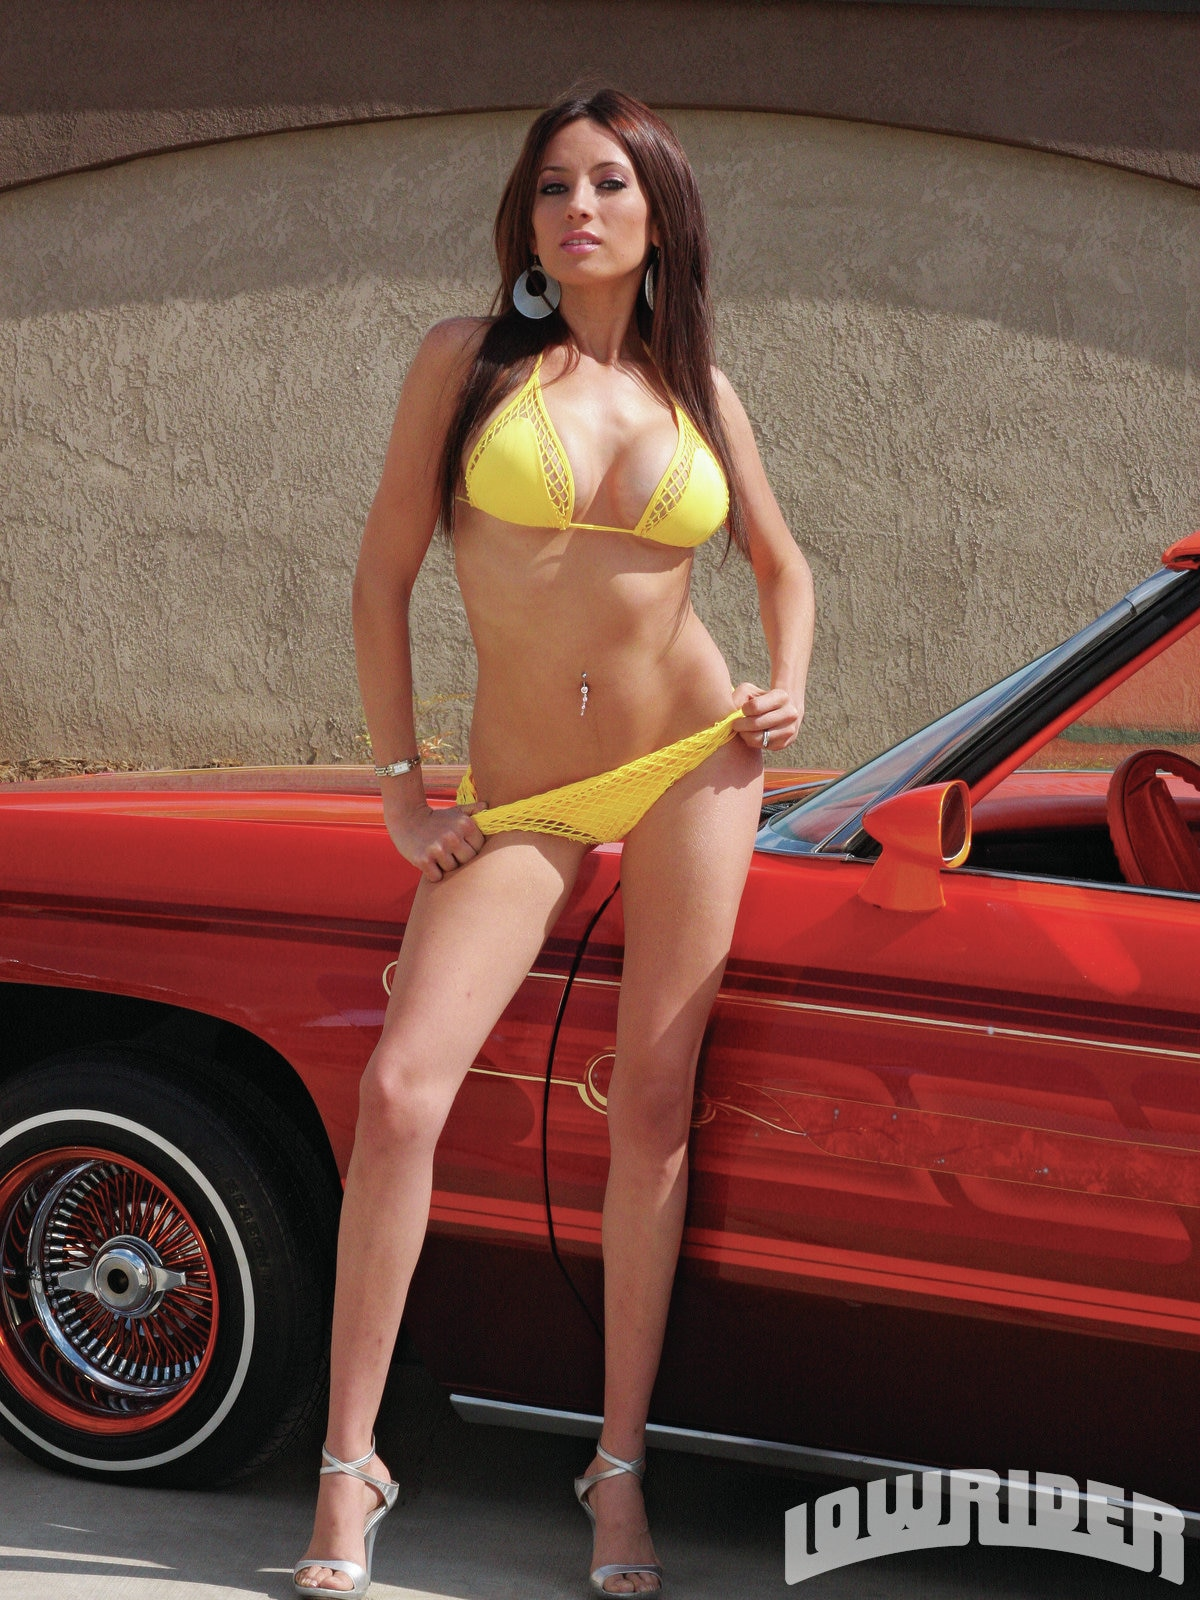 All Star Chevrolet >> Beauties On The Block - July 2011 - Lowrider Girls Magazine